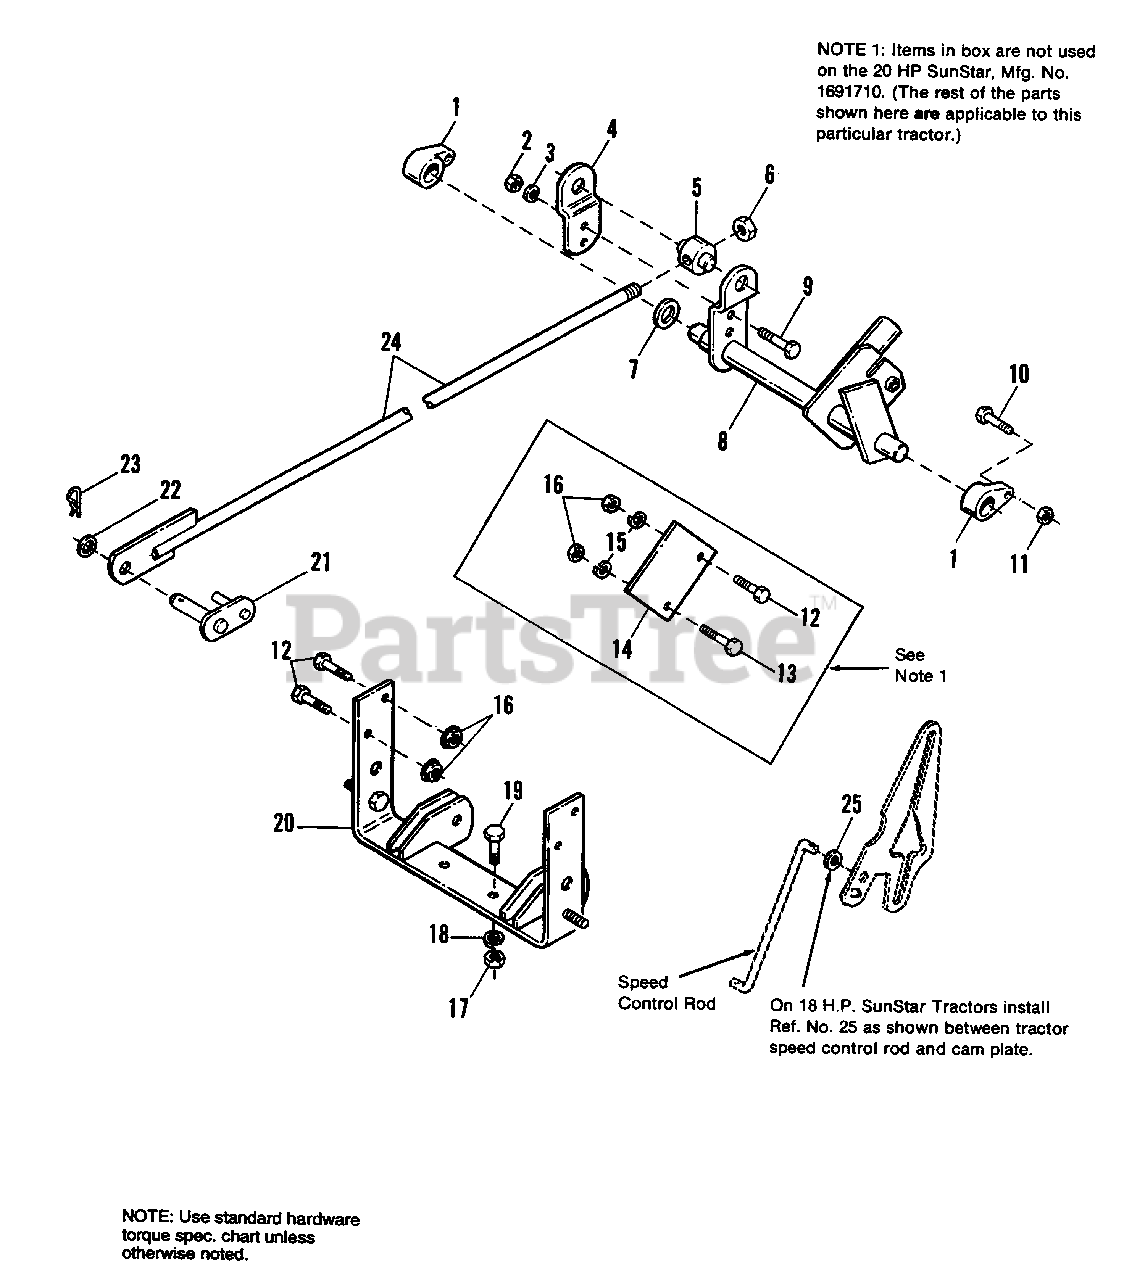 Simplicity 1691765 - Simplicity Rear Lift Kit Lift Group - Rear Parts  Lookup with Diagrams | PartsTree